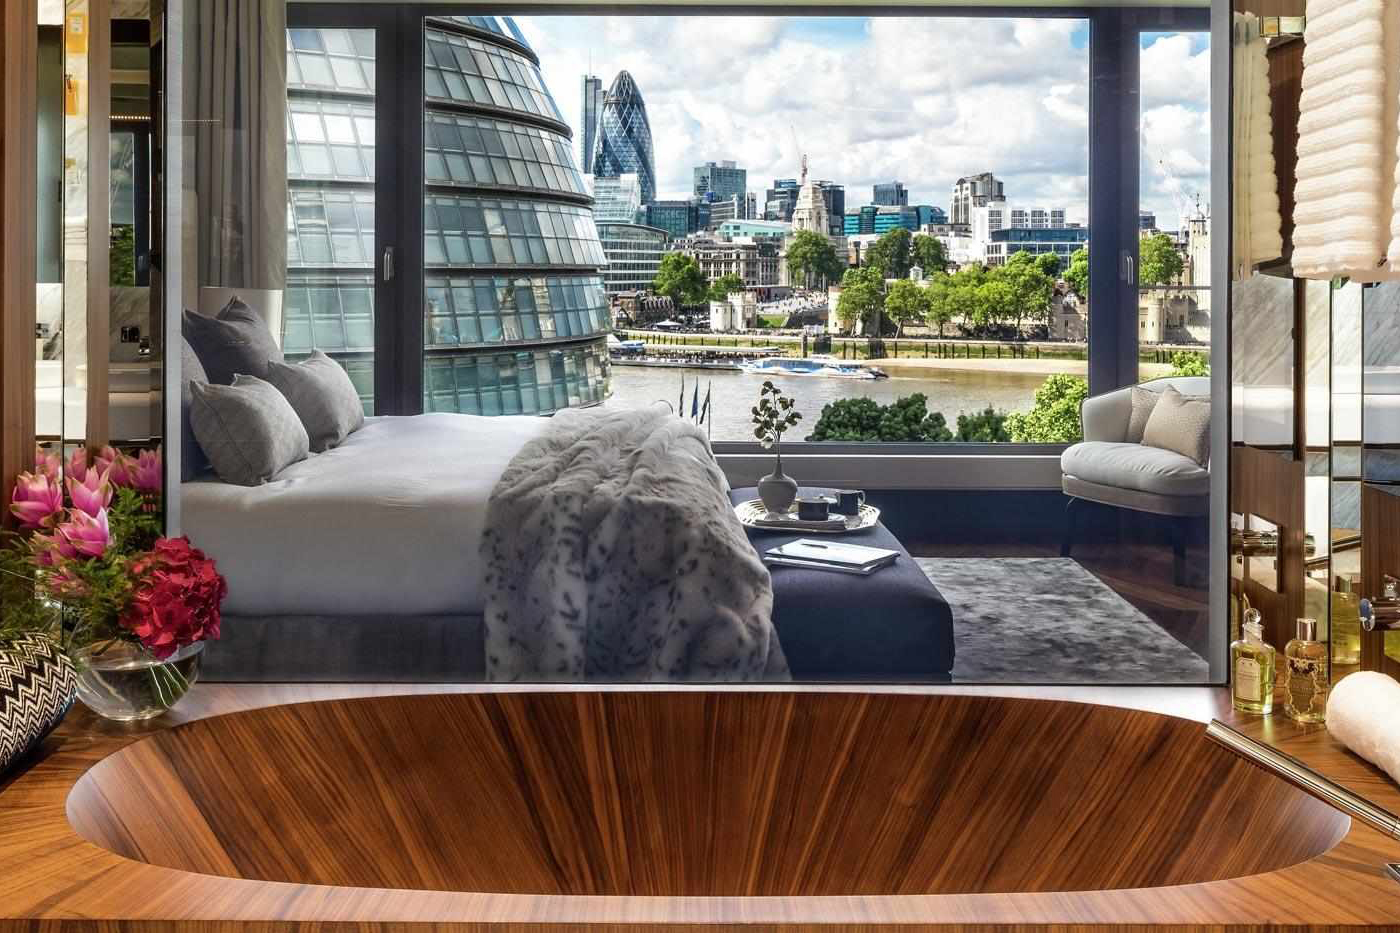 The view from a bedroom at One Tower Bridge looking over City Hall and the River Thames